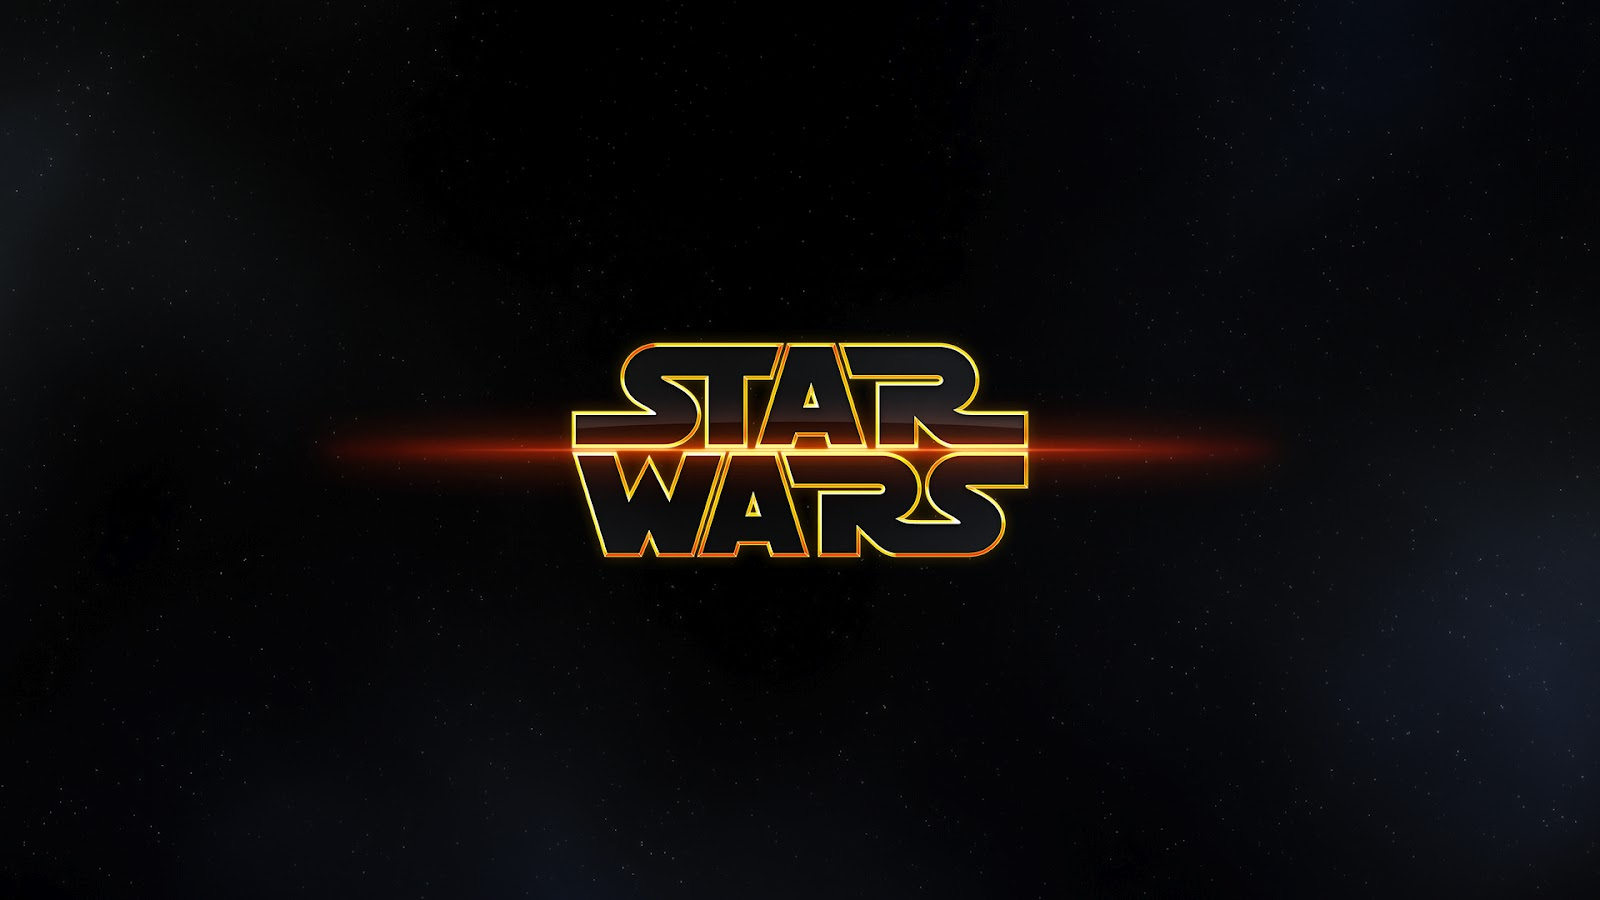 Star-Wars-Logo-Wallpaper-HD.jpg